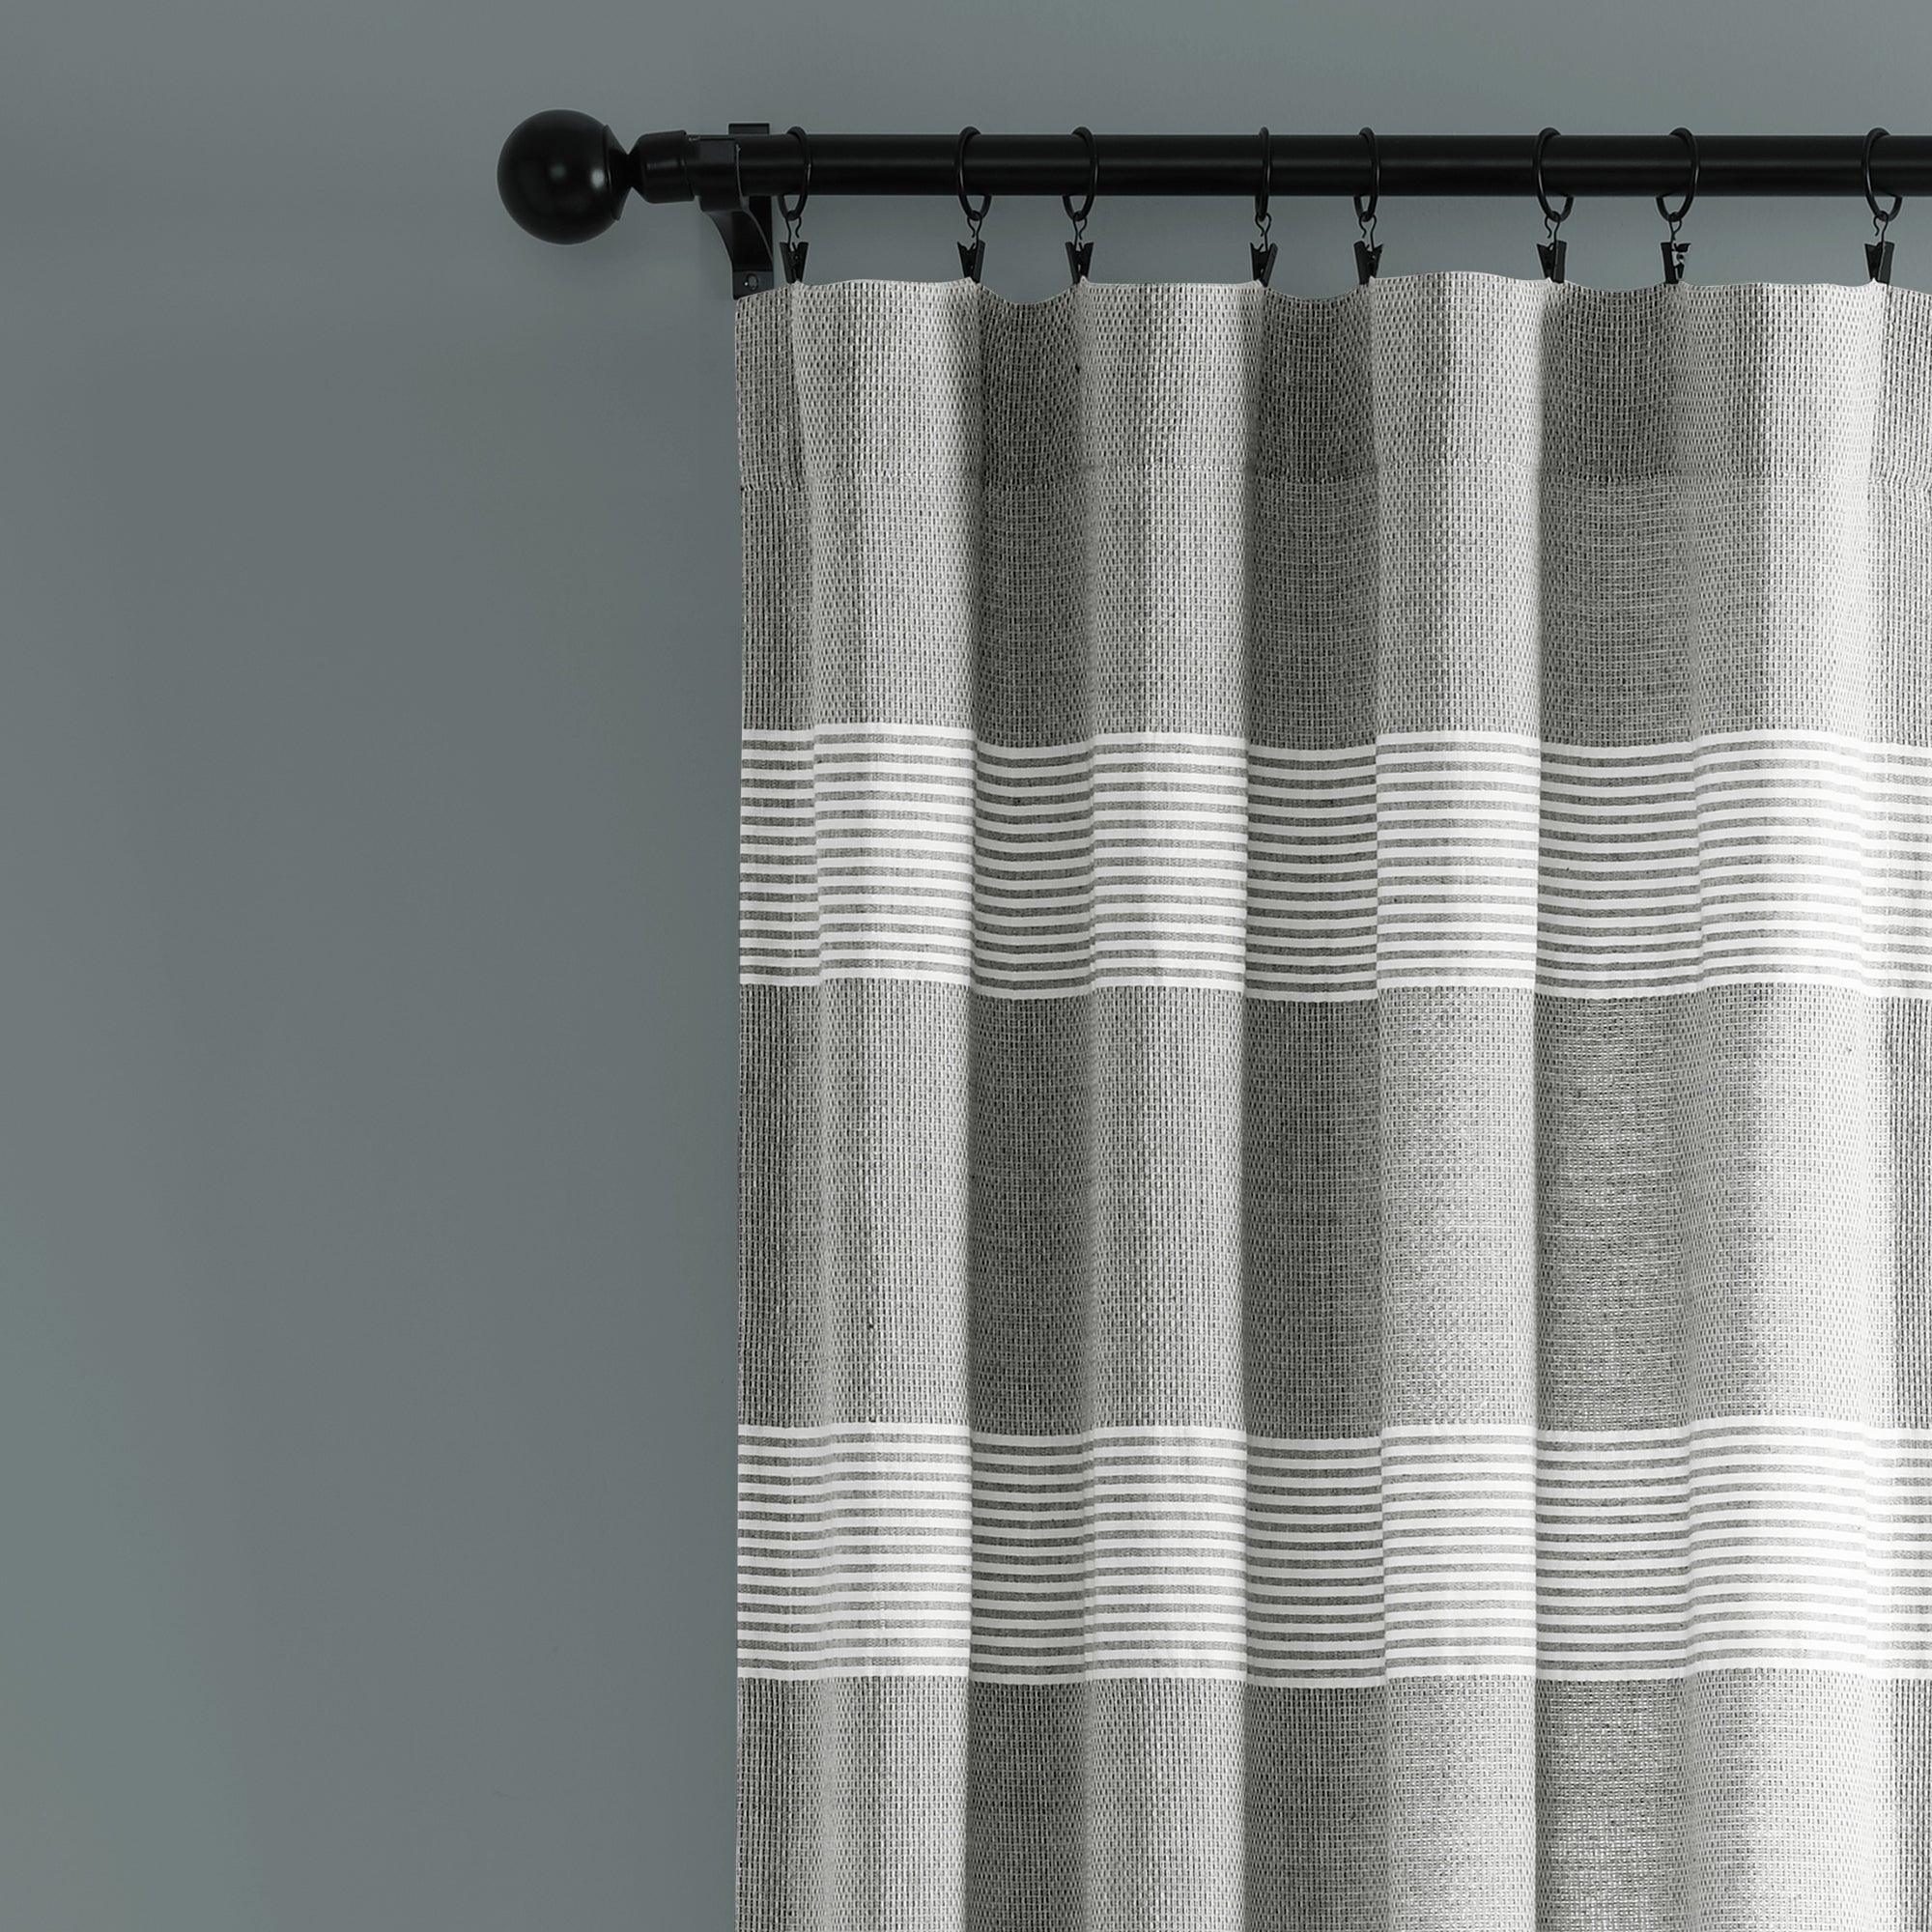 Lush Decor Tucker Stripe Yarn Dyed Cotton Knotted Tassel Window Curtain Panel Pair With Regard To Ombre Stripe Yarn Dyed Cotton Window Curtain Panel Pairs (View 3 of 20)